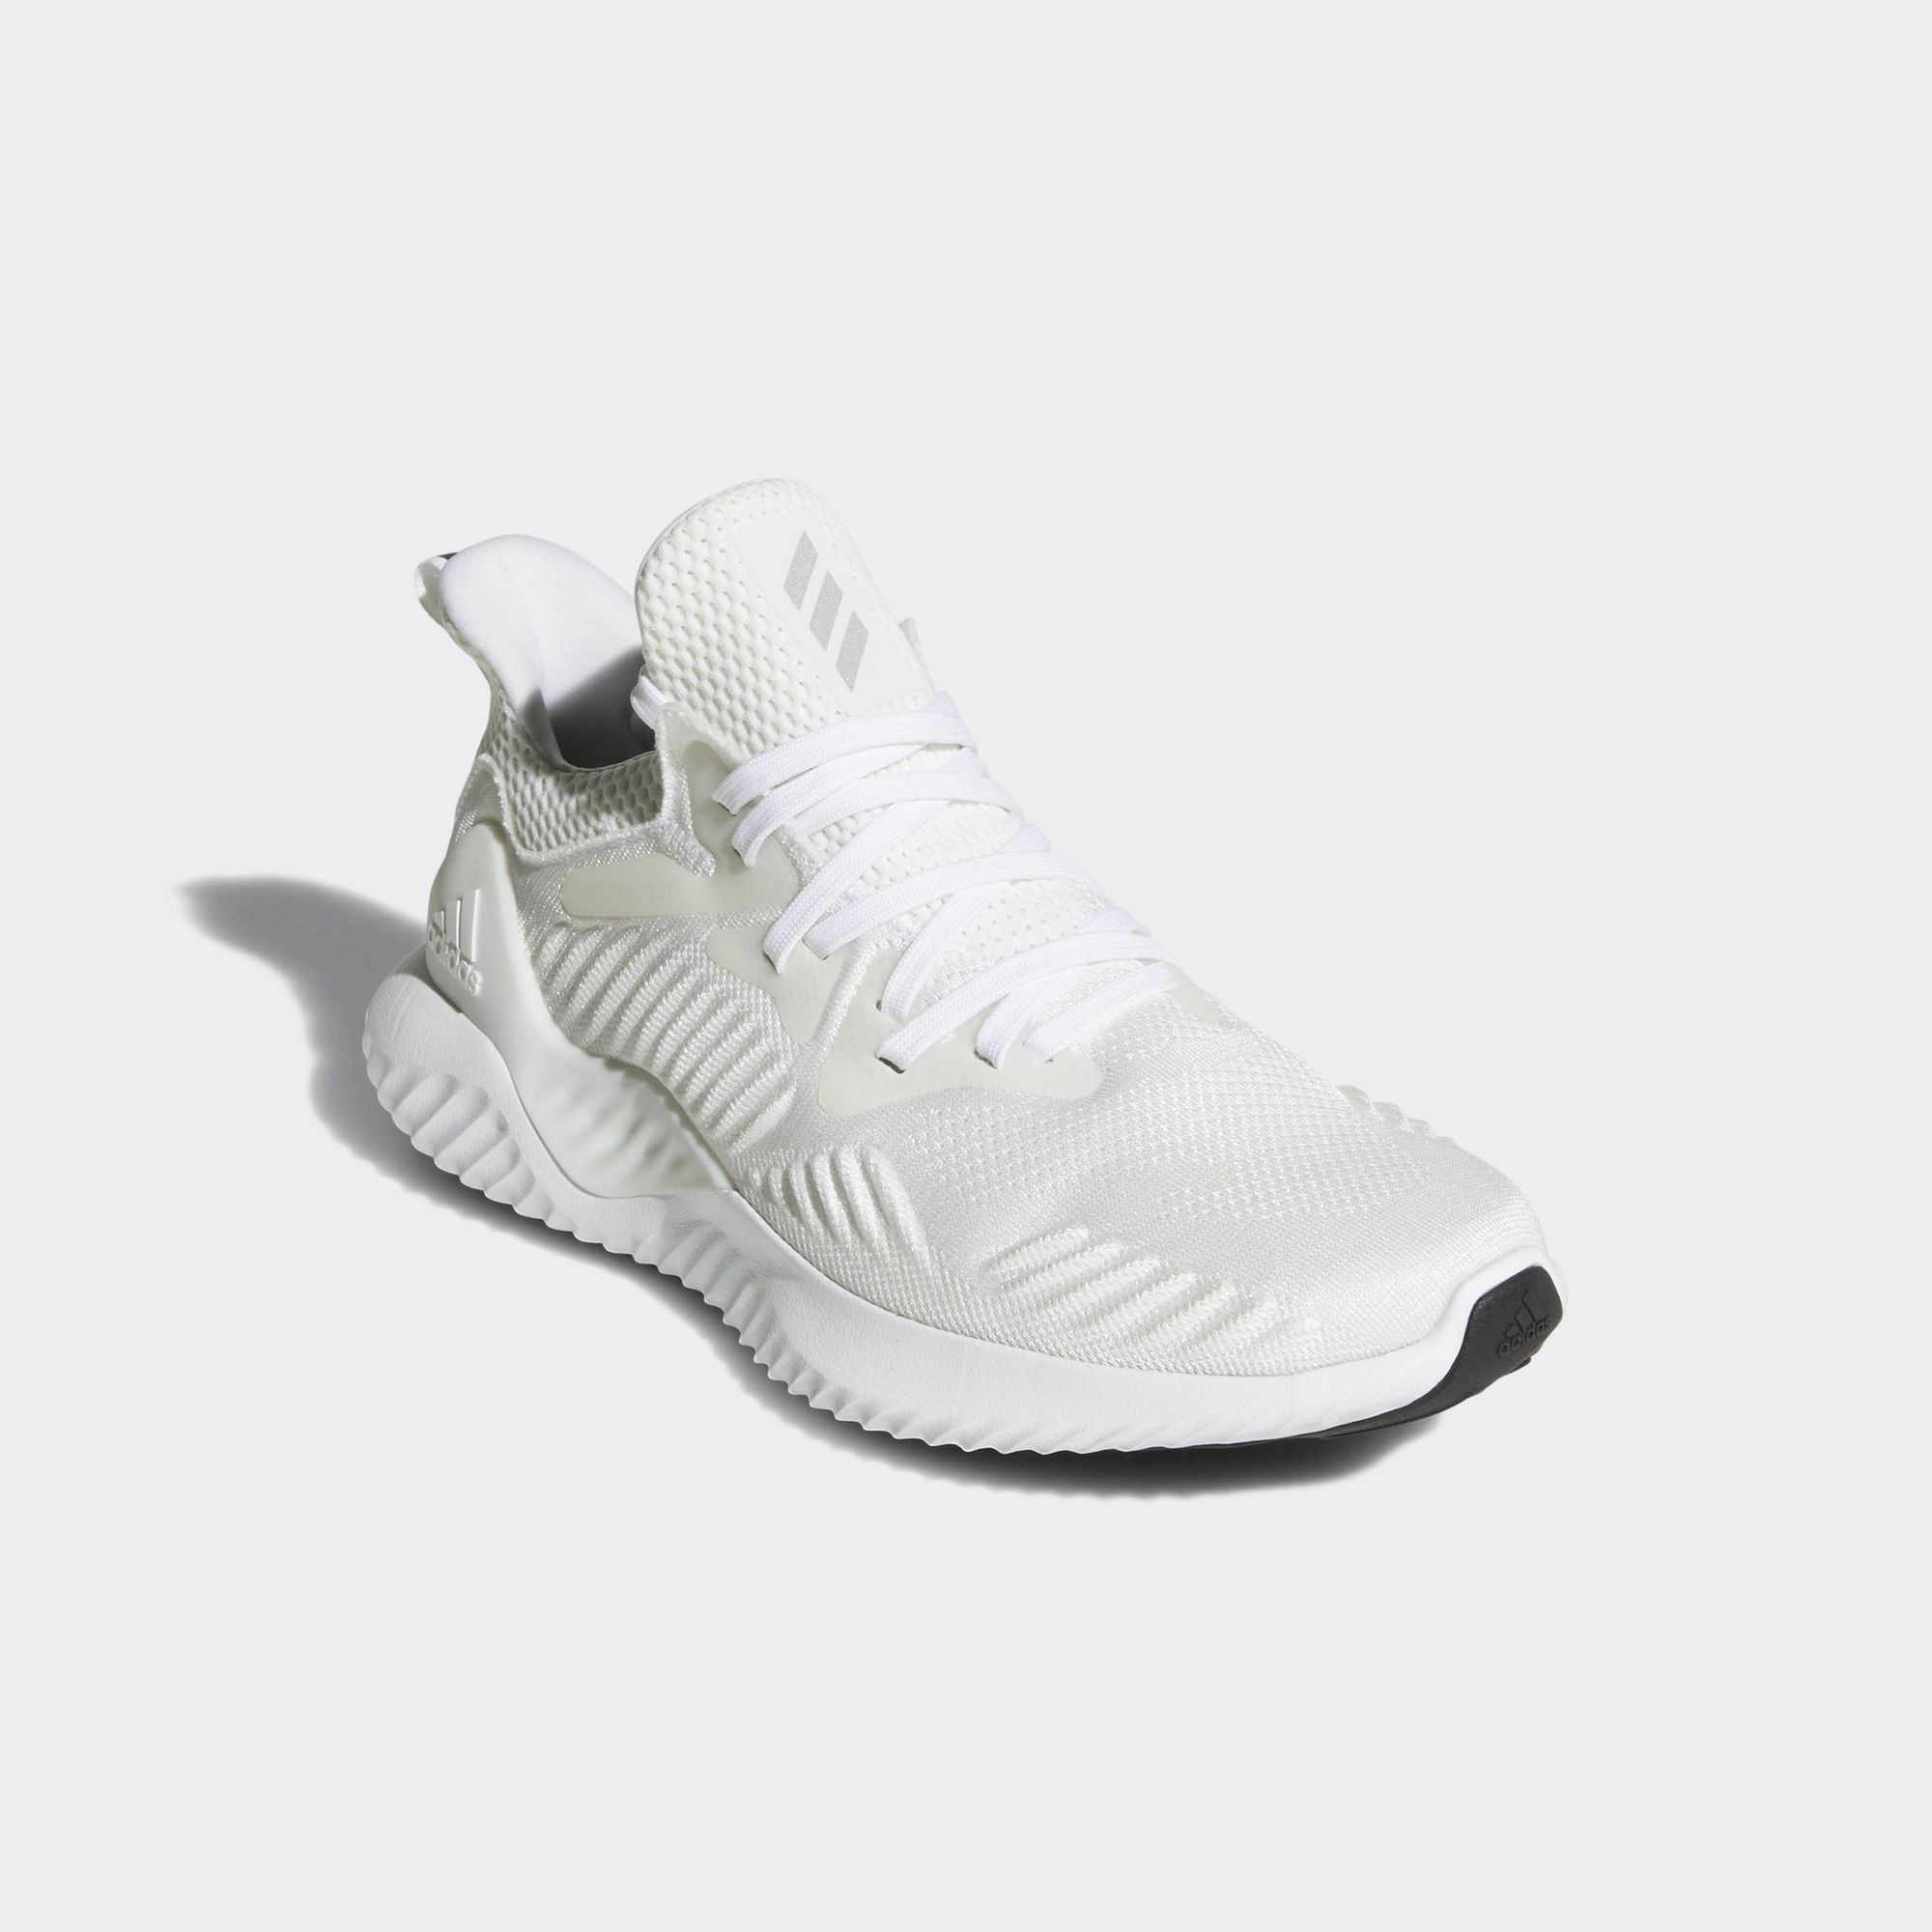 check out 182cb b6657 adidas Alphabounce Beyond Shoes - White  adidas US